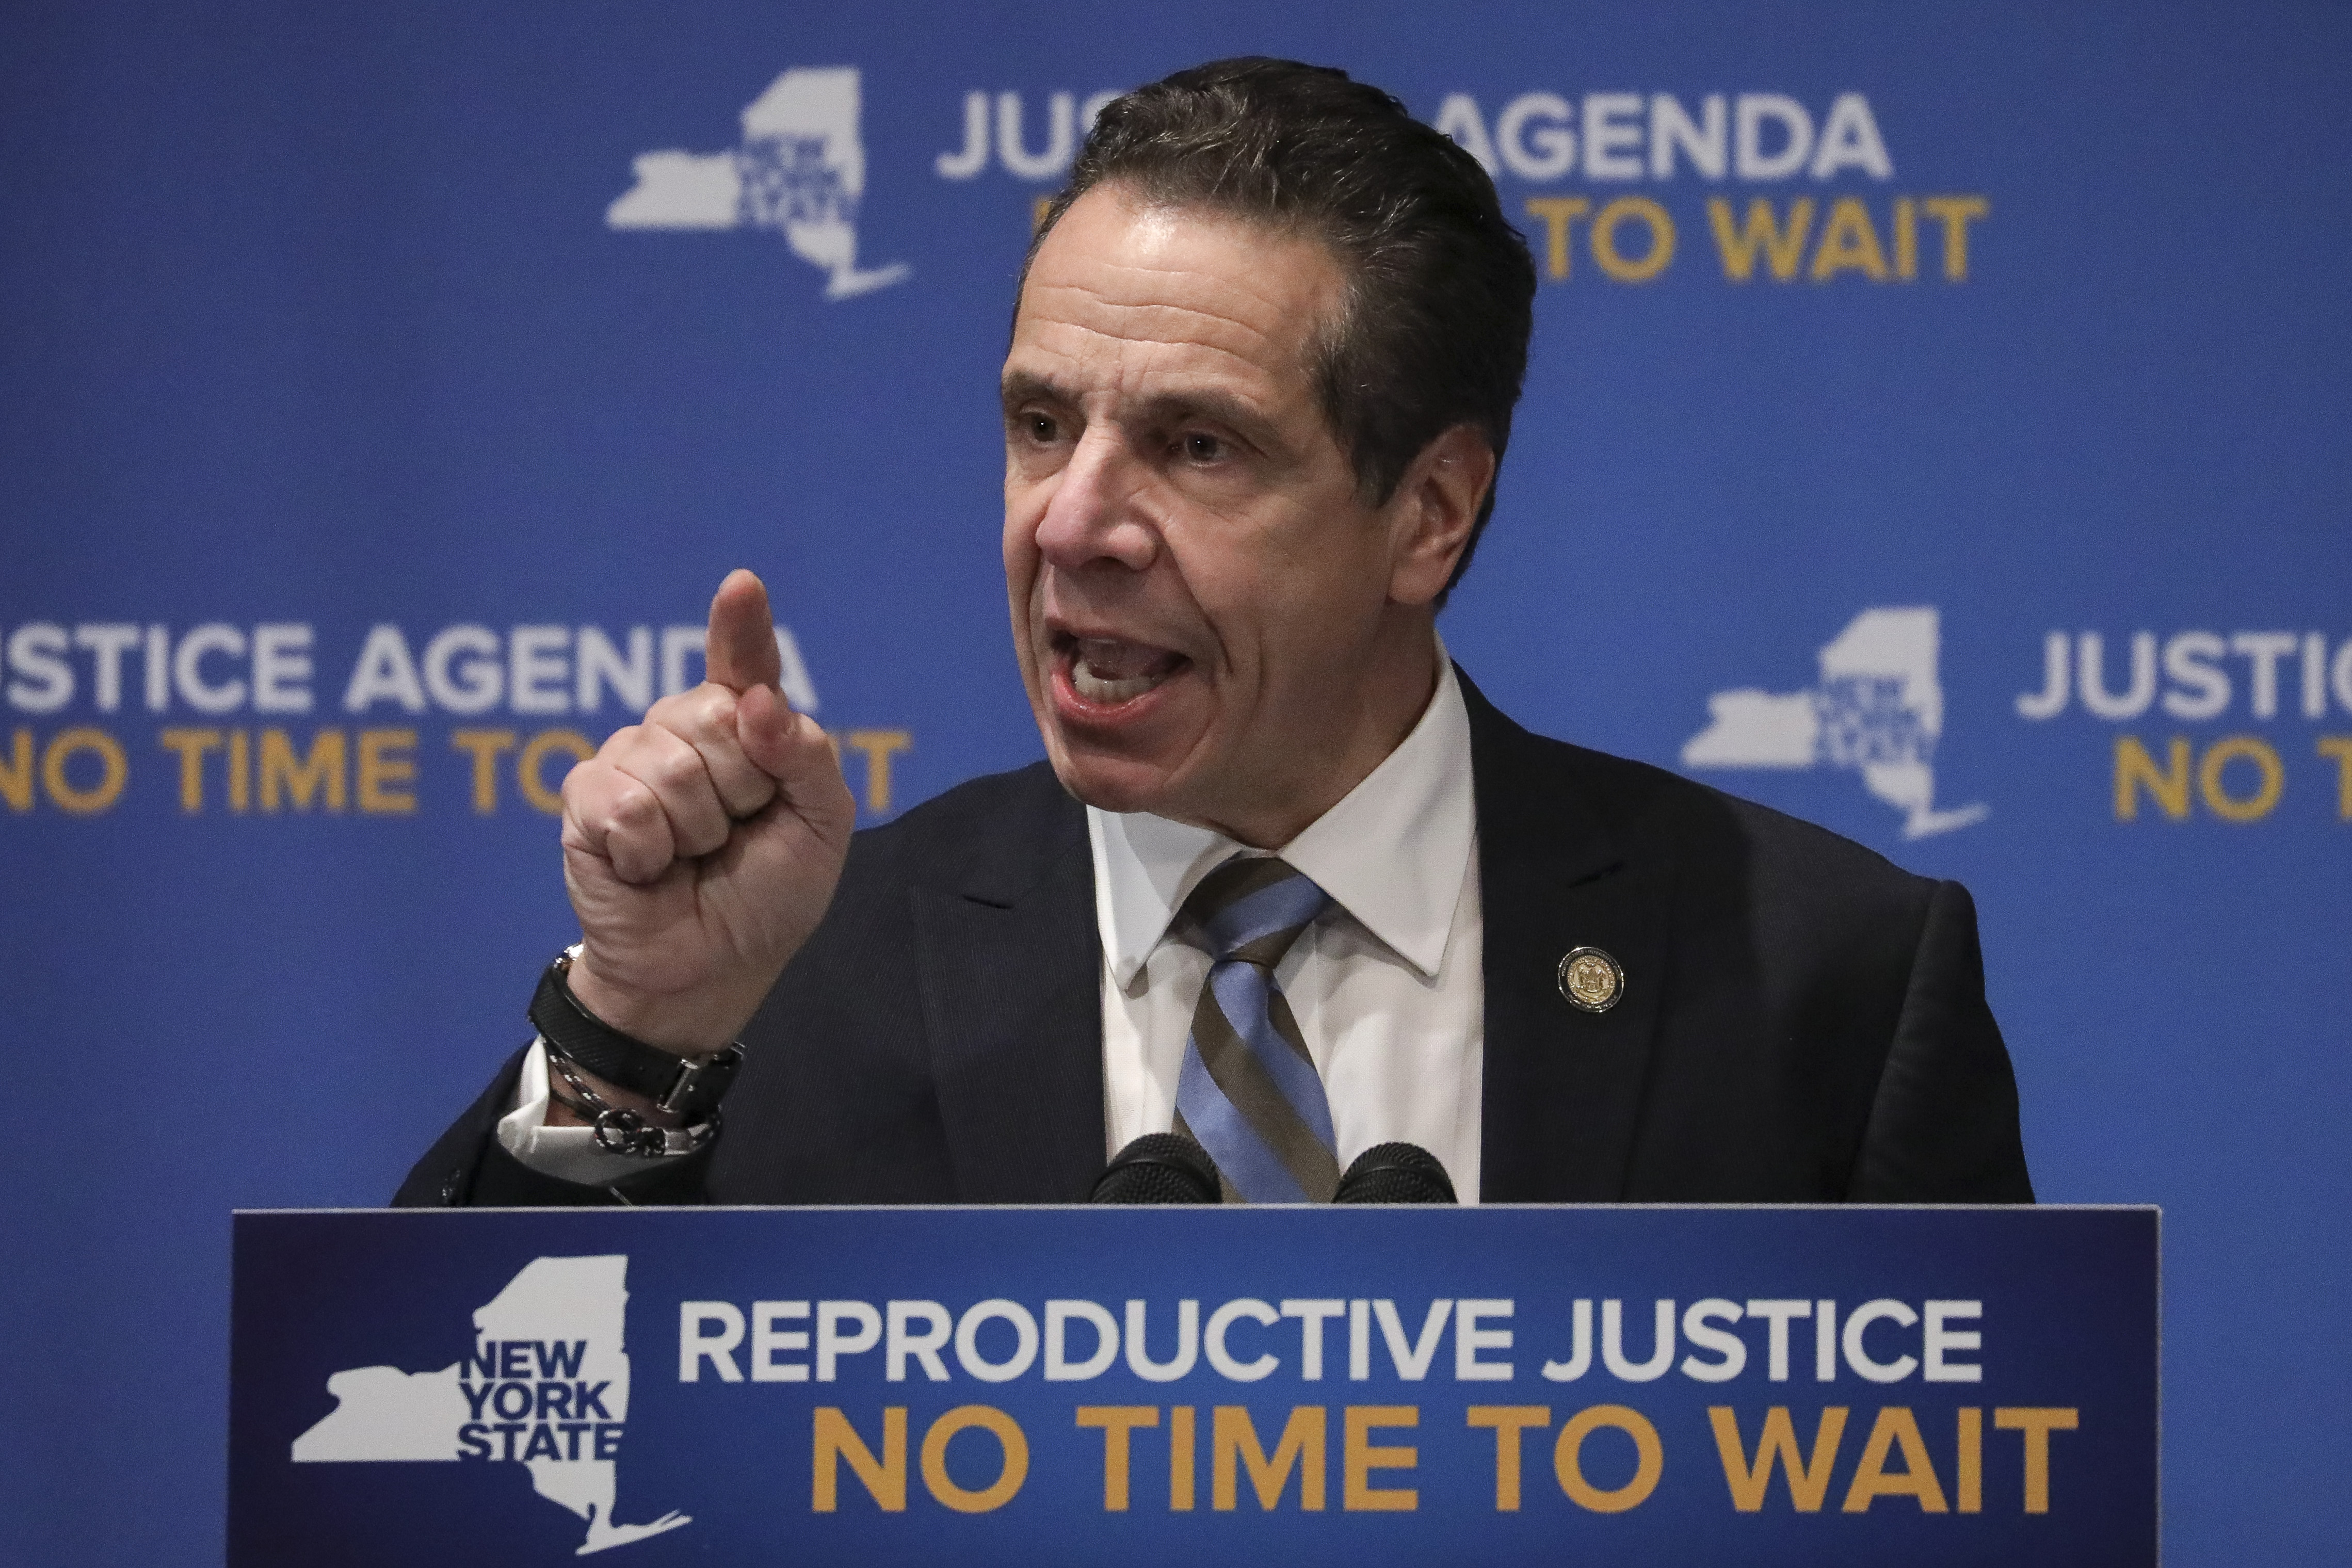 New York's Gov. Andrew Cuomo signs landmark abortion protections into law.